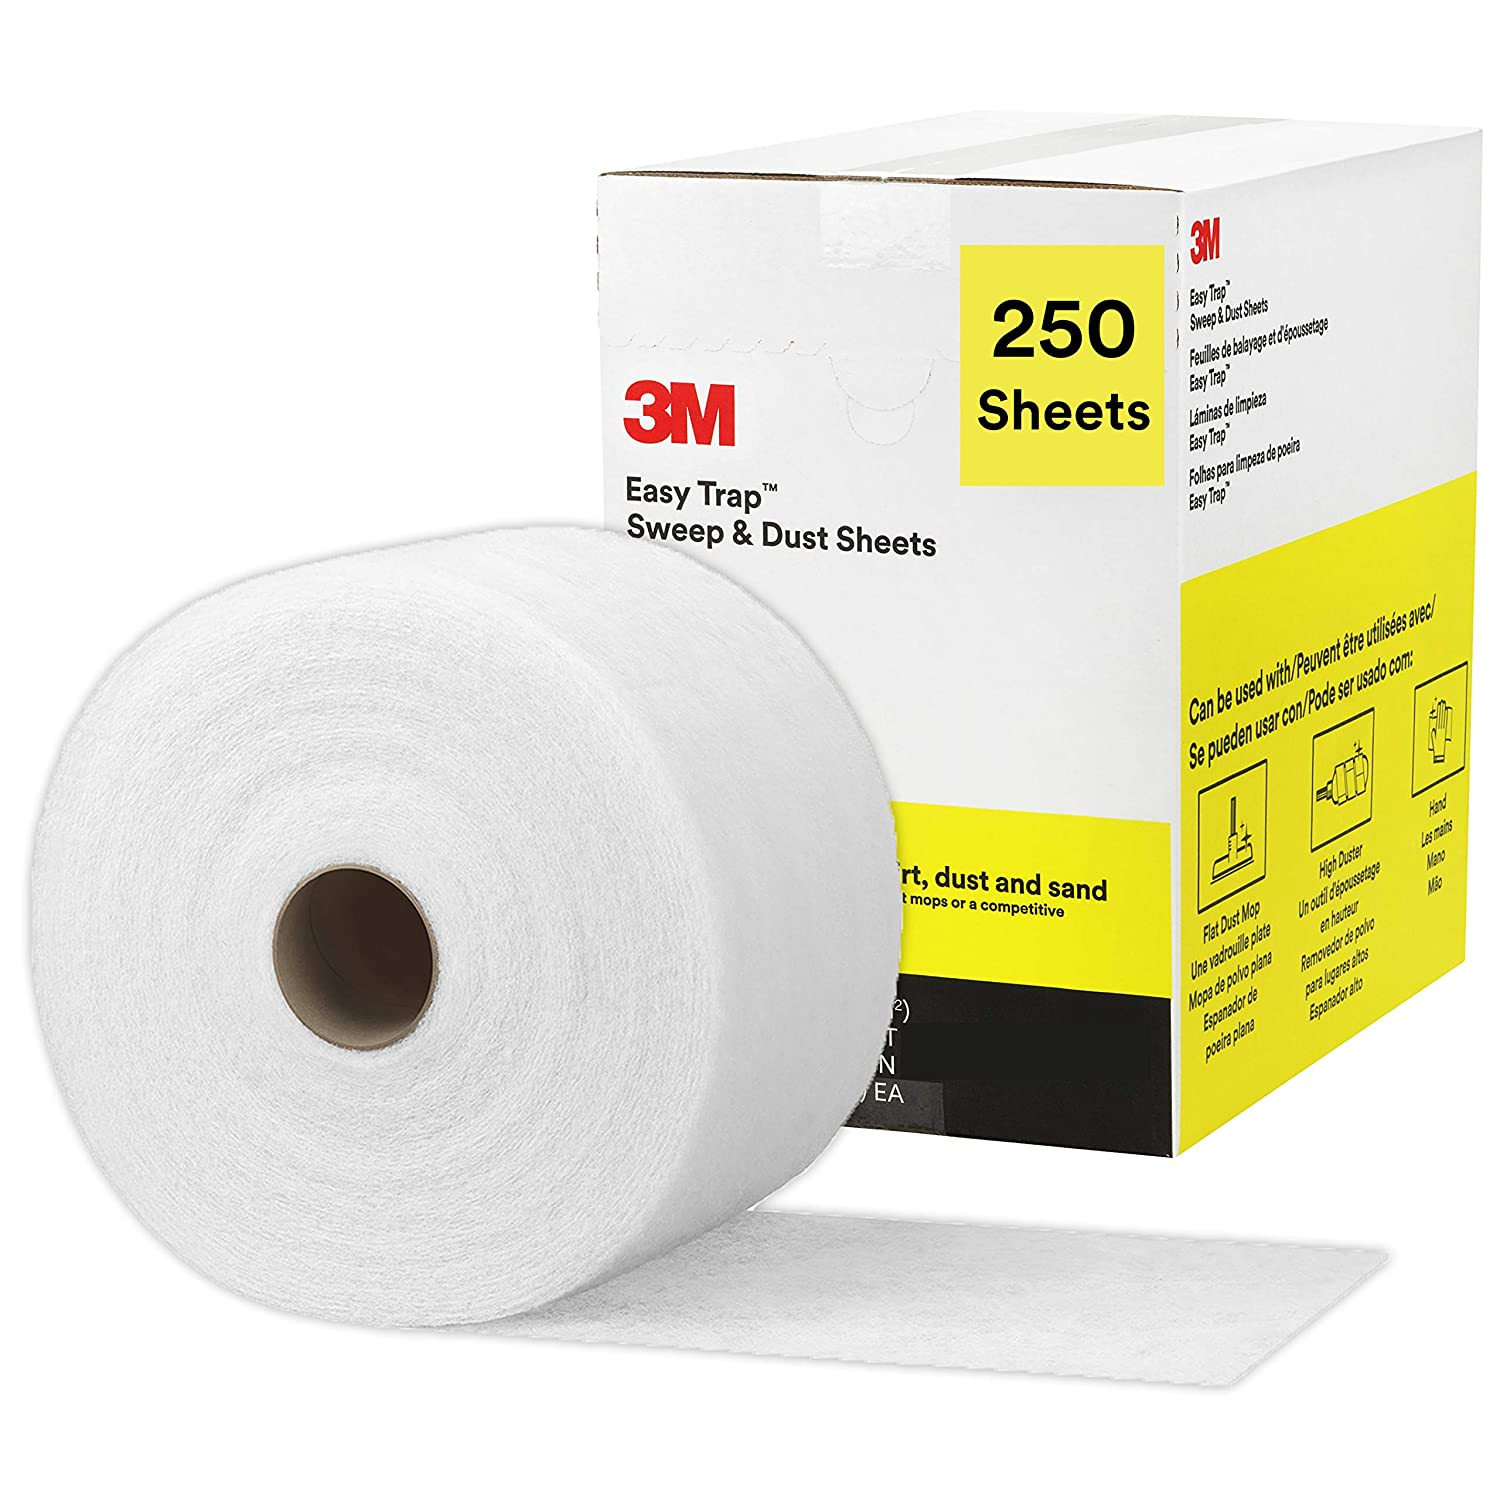 """3M Easy Trap Duster Sweep and Dust Sheets for Cleaning Dirt, Sand, and Hair on Hardwood Floors, Vinyl, and Tile in Kitchens, Bathrooms, and Entryways, 5"""" x 6"""" Sheets, 250 Sheets/Box"""